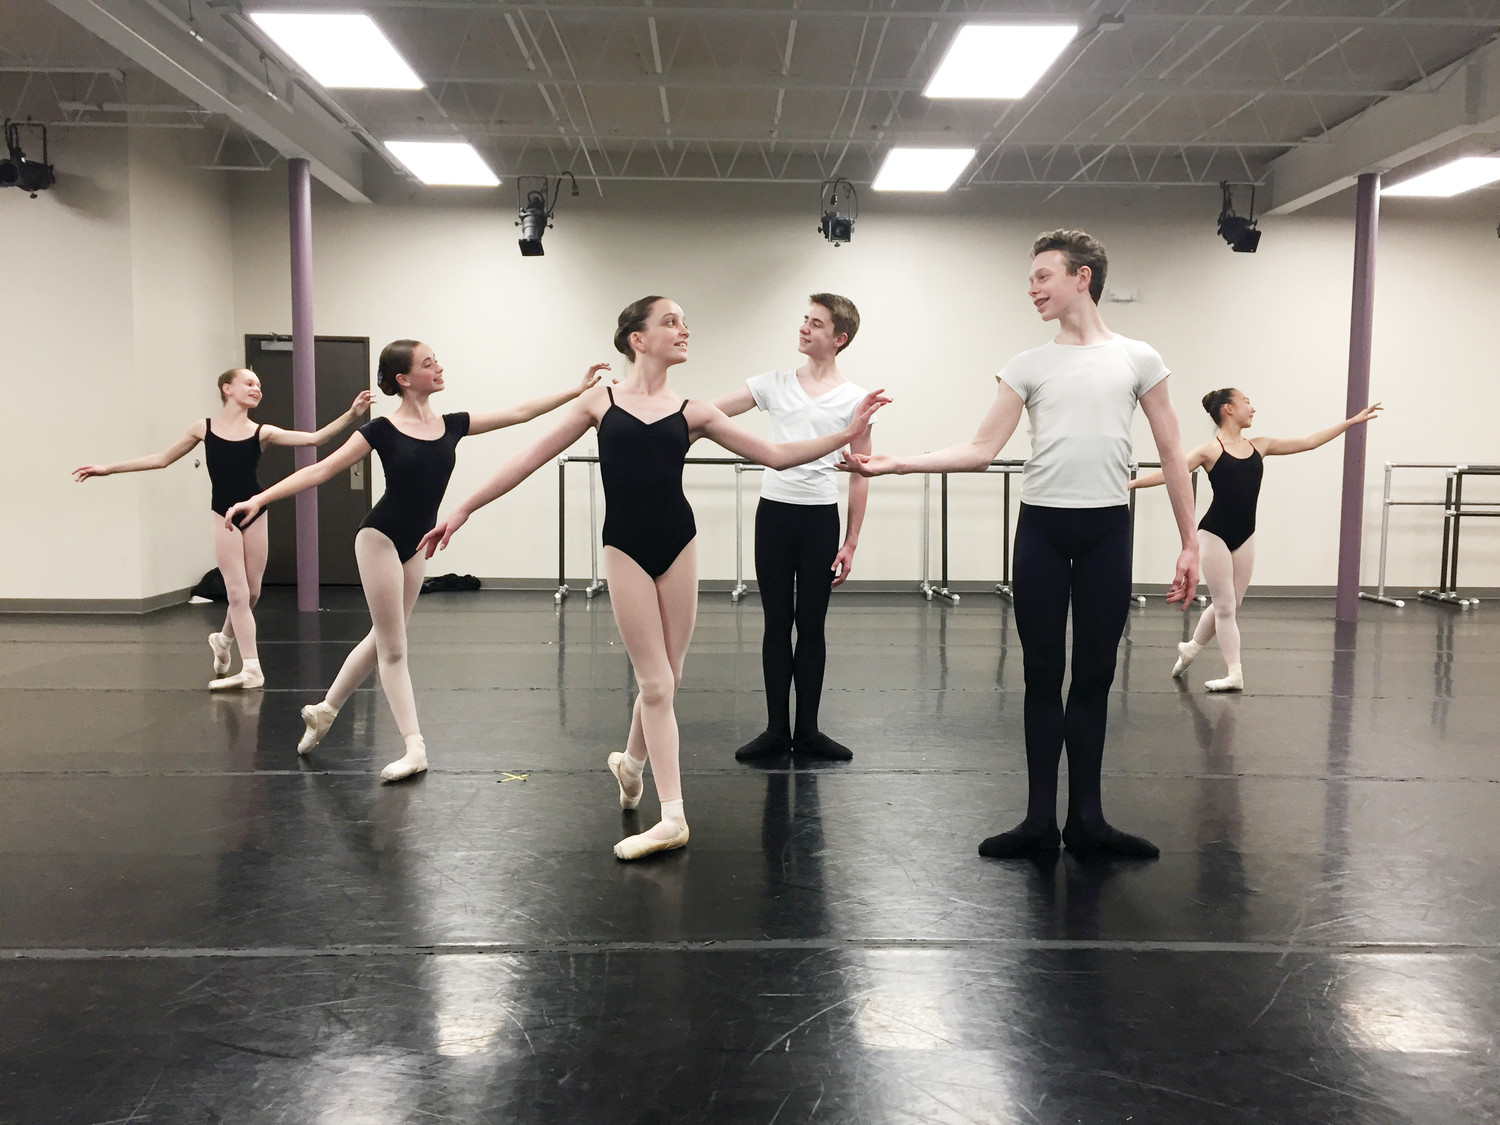 Nutcracker ballet a time-honored holiday tradition